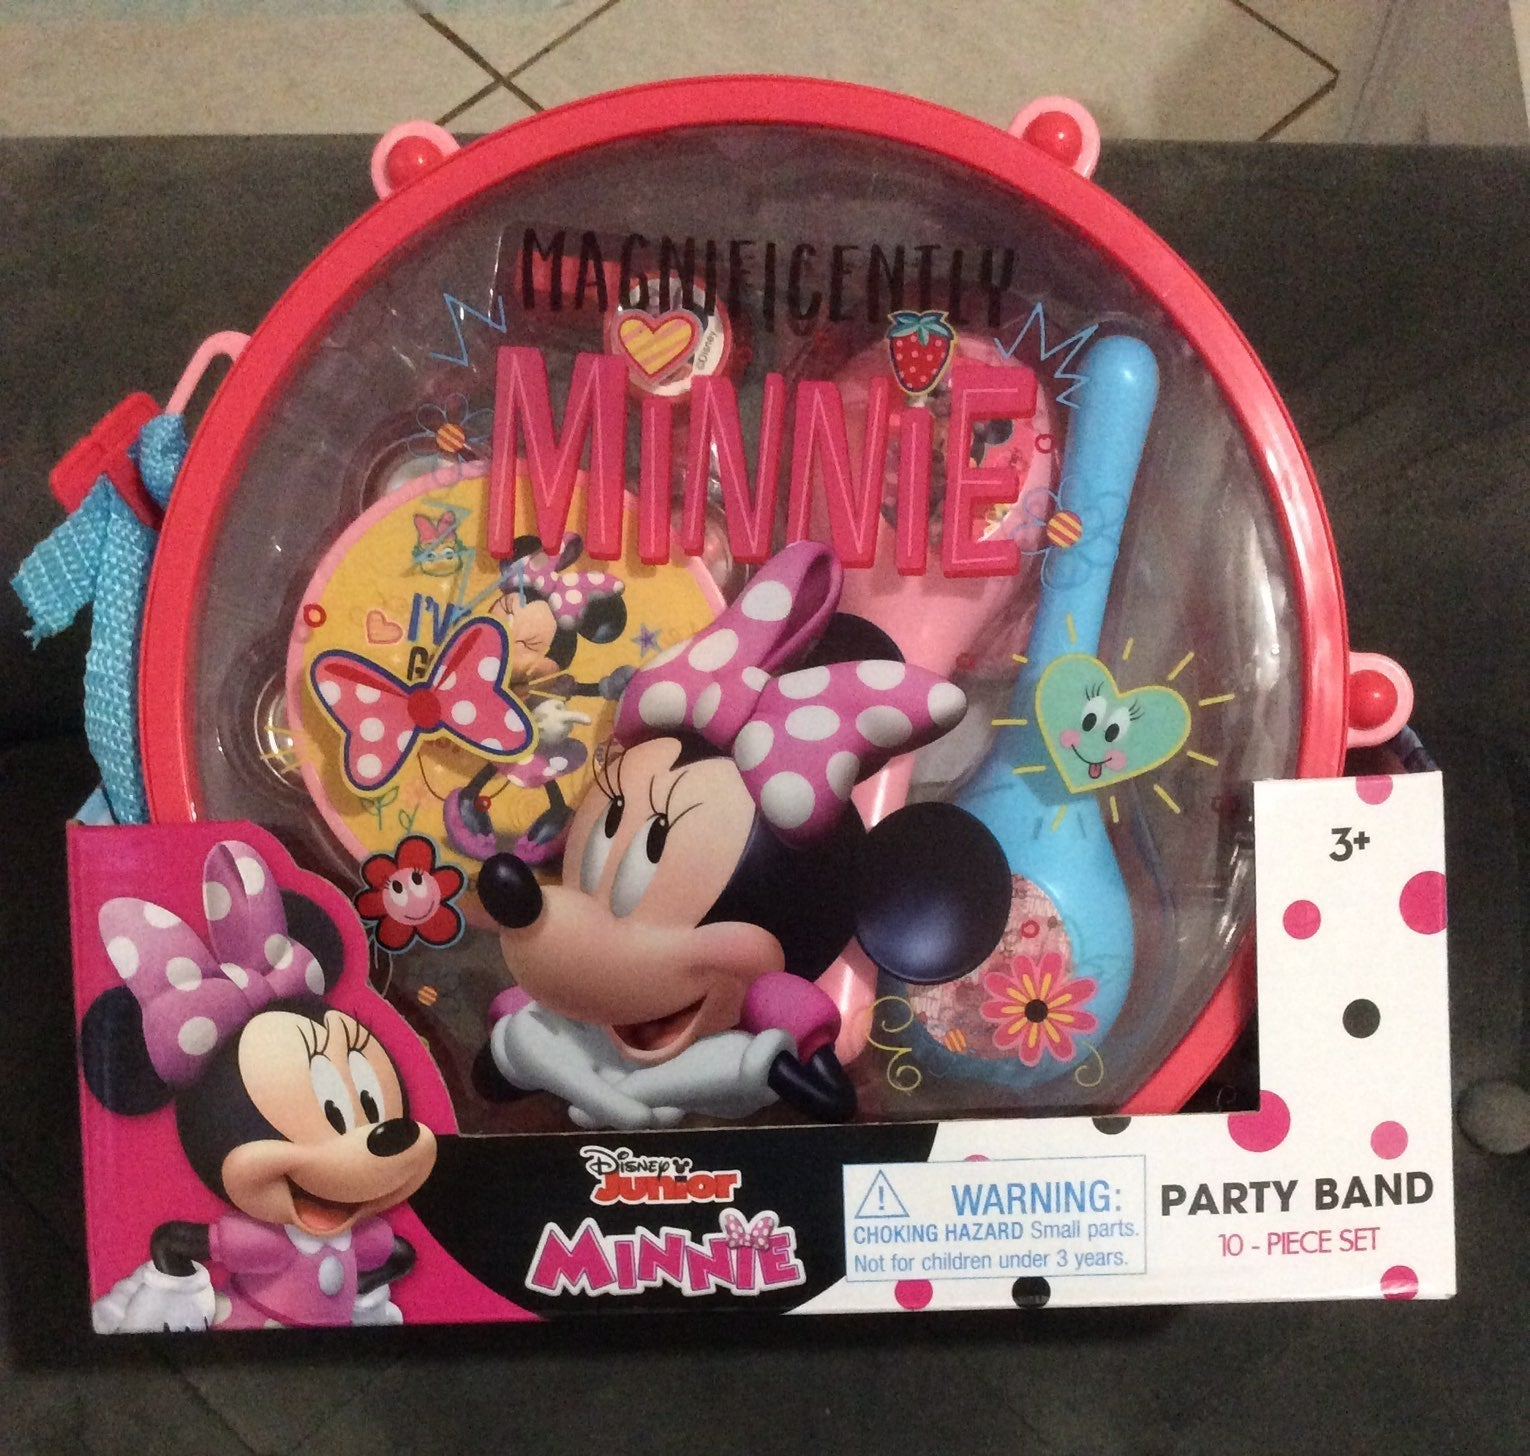 Disney junior minnie mouse party band